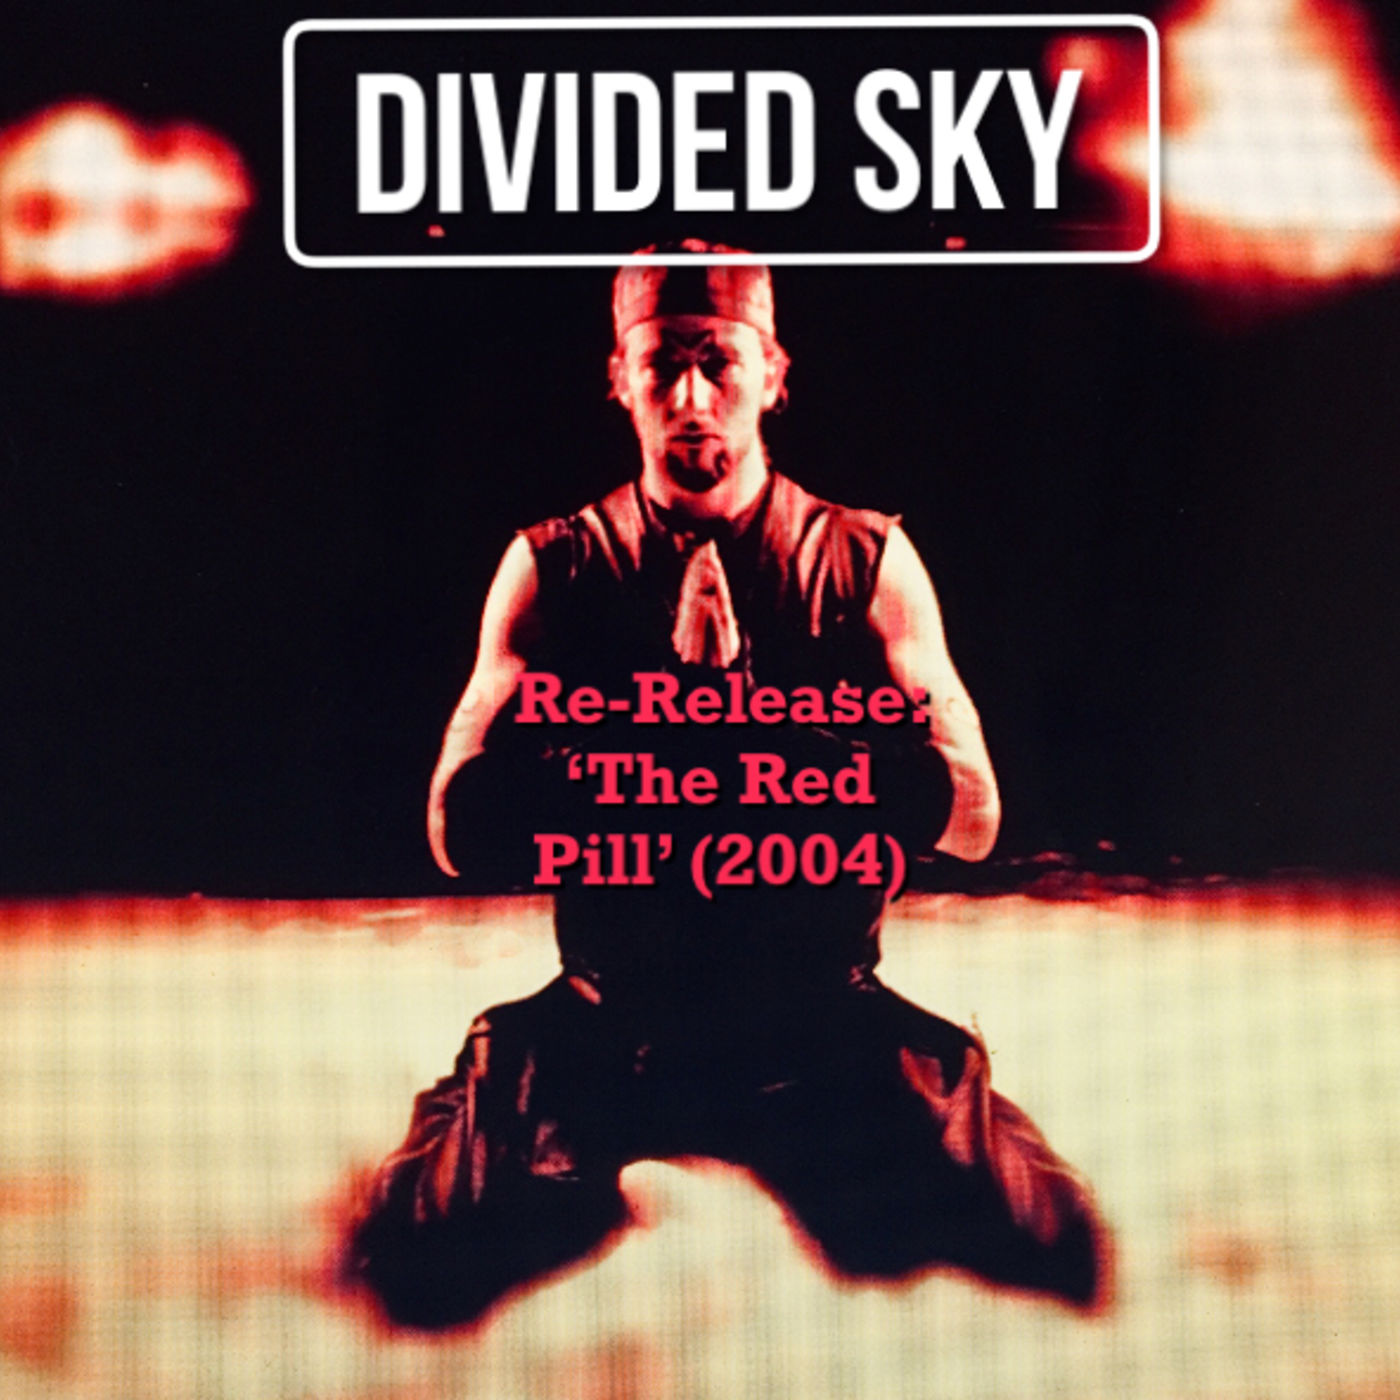 Divided Sky RE-RELEASE: 'The Red Pill' (2004)